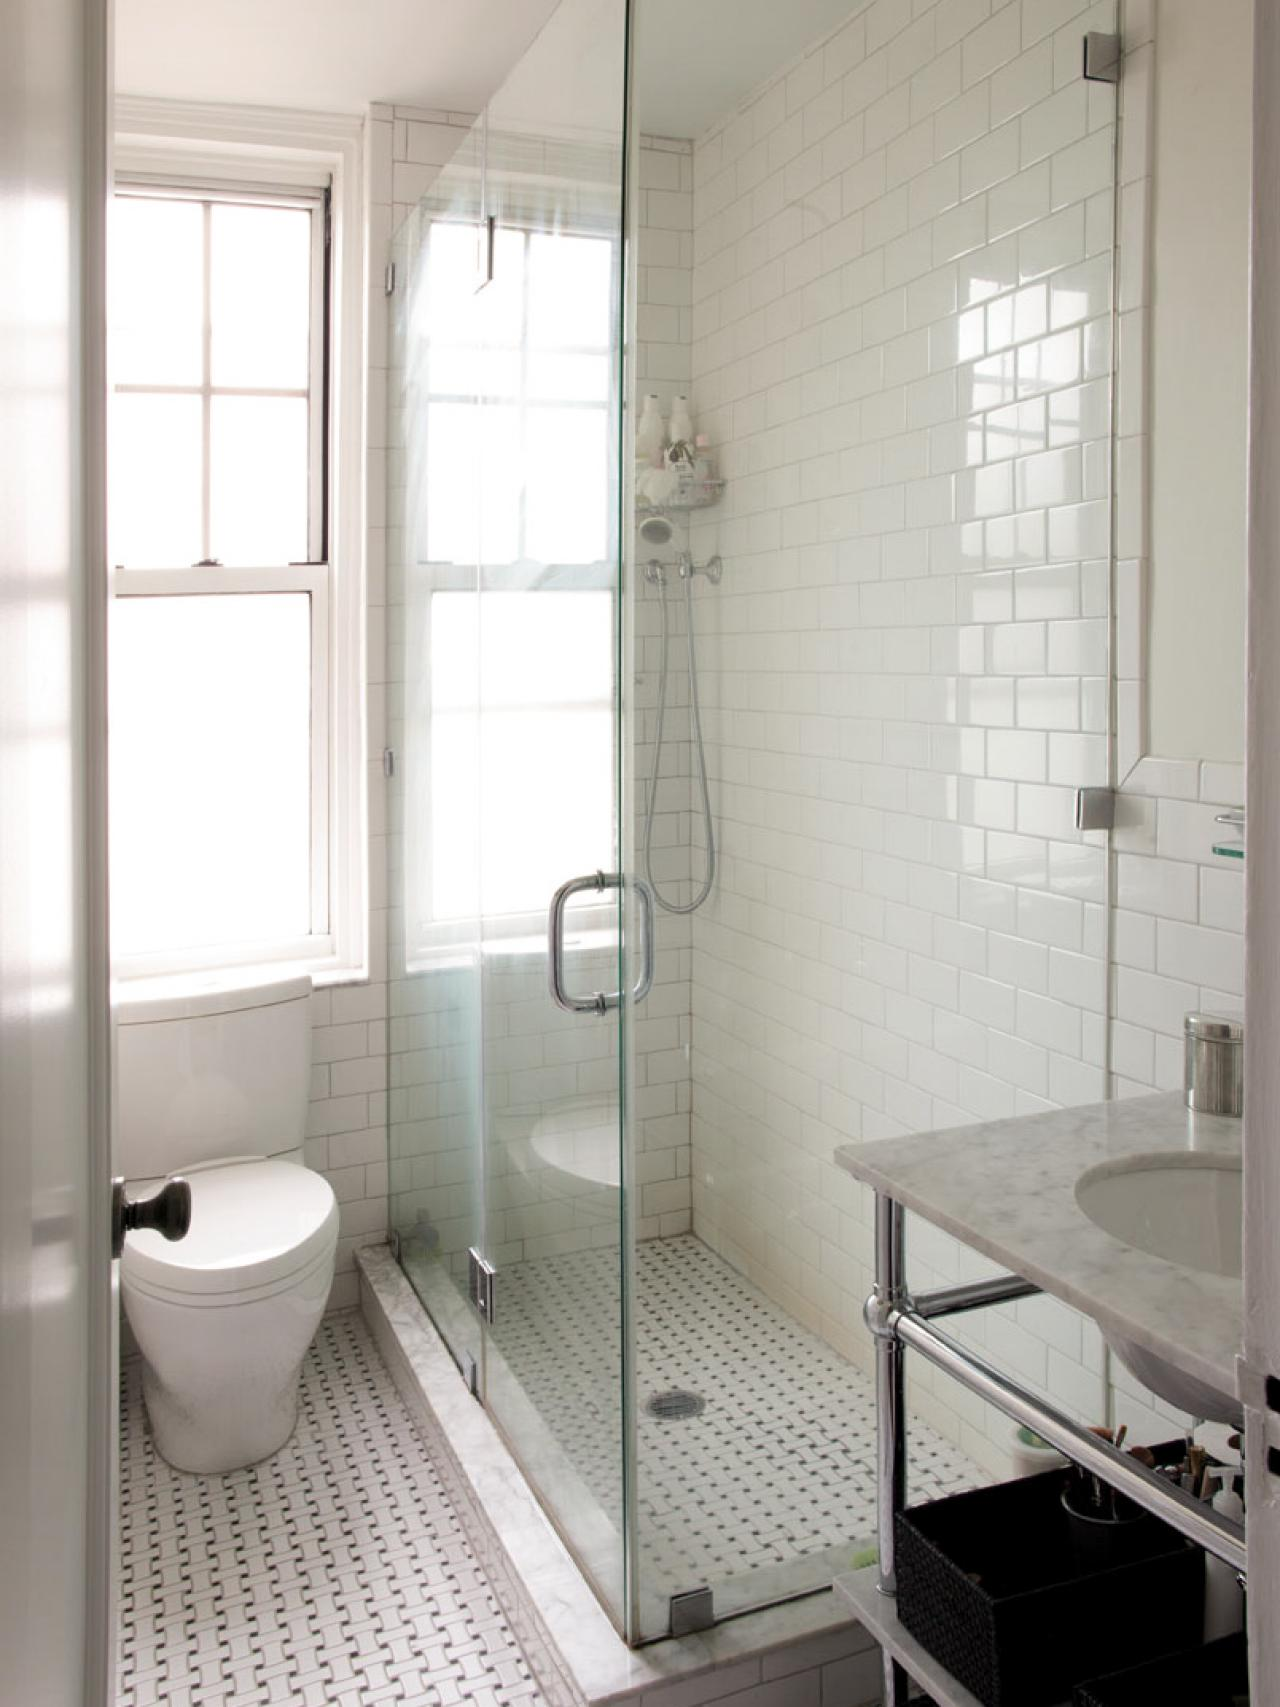 DP_Design-Development-traditional-white-bathroom-shower_v.jpg.rend.hgtvcom.1280.1707